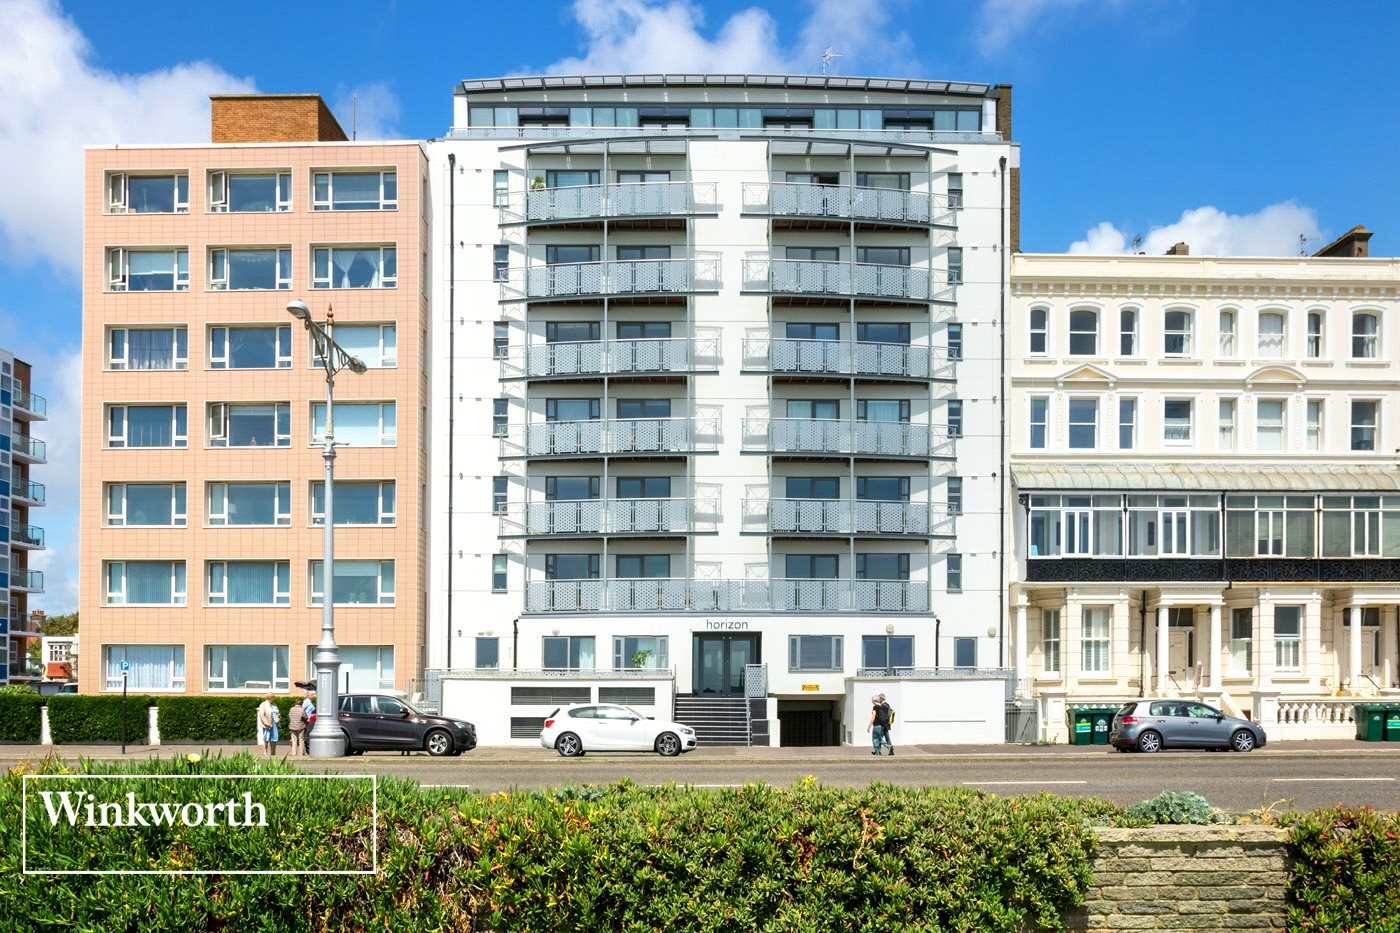 2 Bedrooms Flat for sale in Kingsway, Hove, East Sussex, BN3